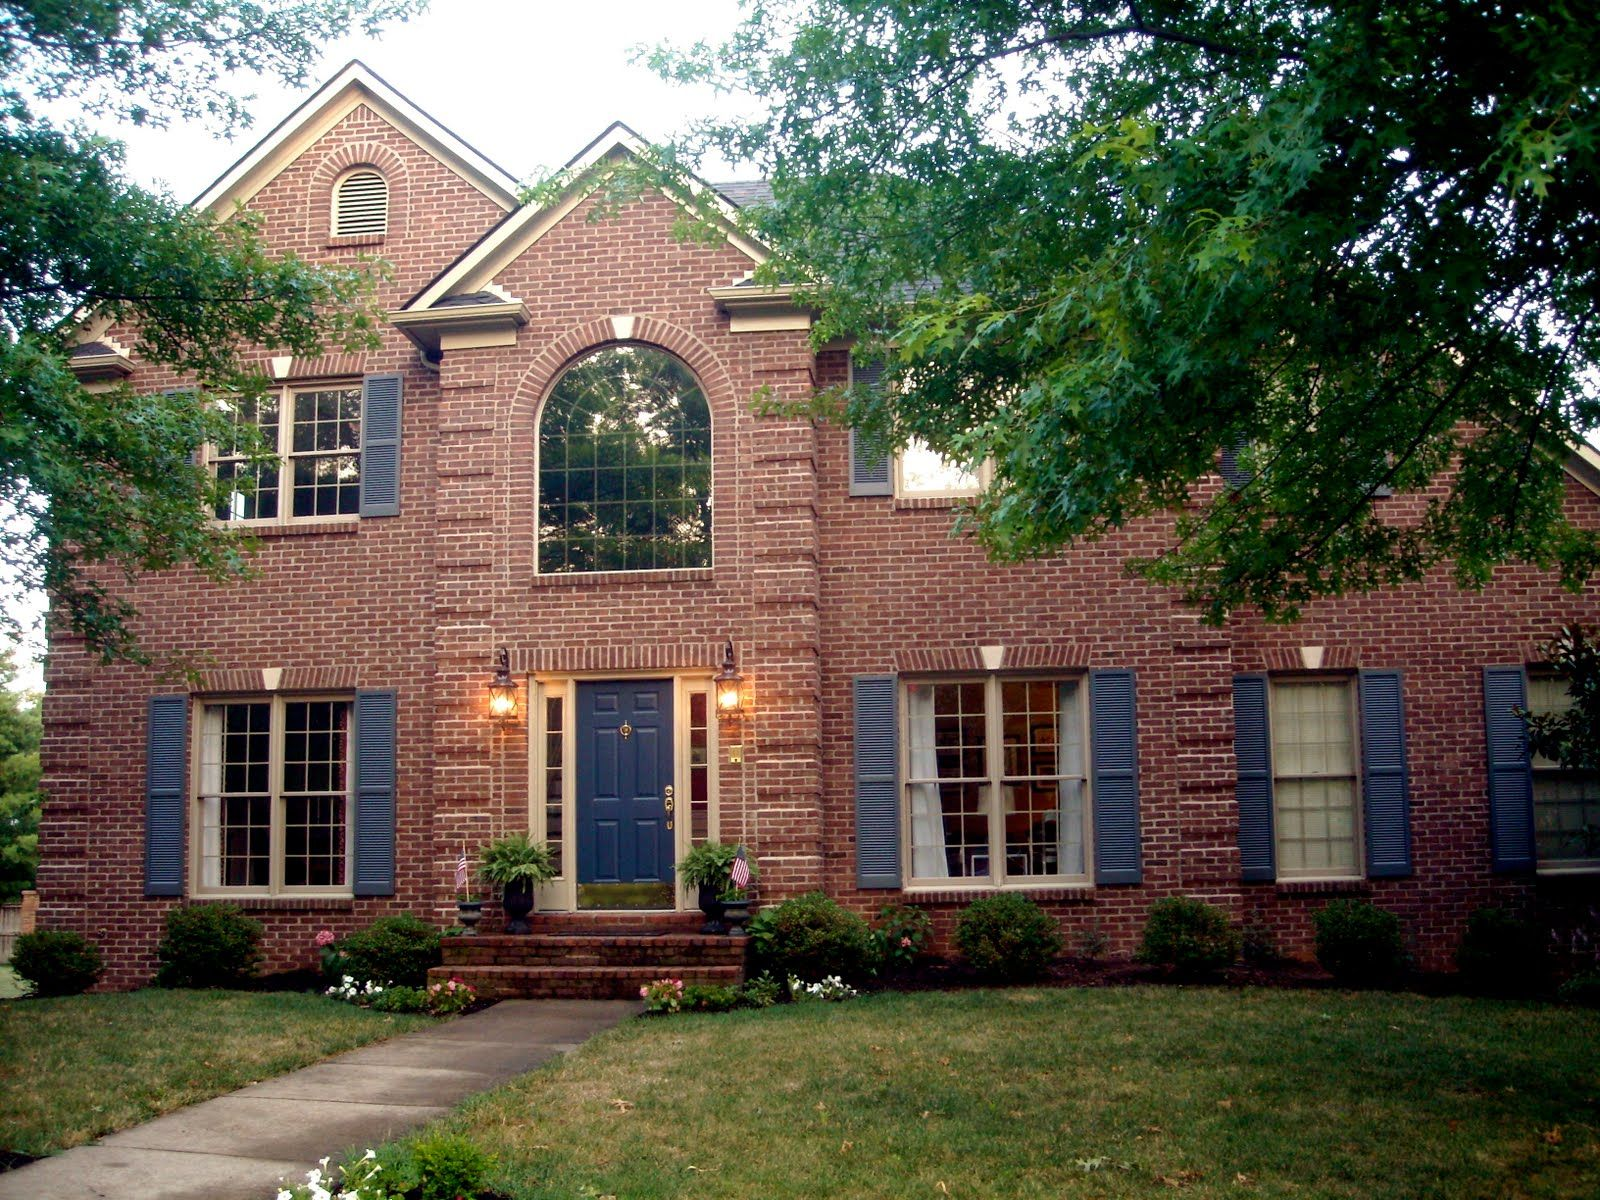 Exterior House Colors With Red Brick brick colors for house exterior | isn't that crazy! oh, the